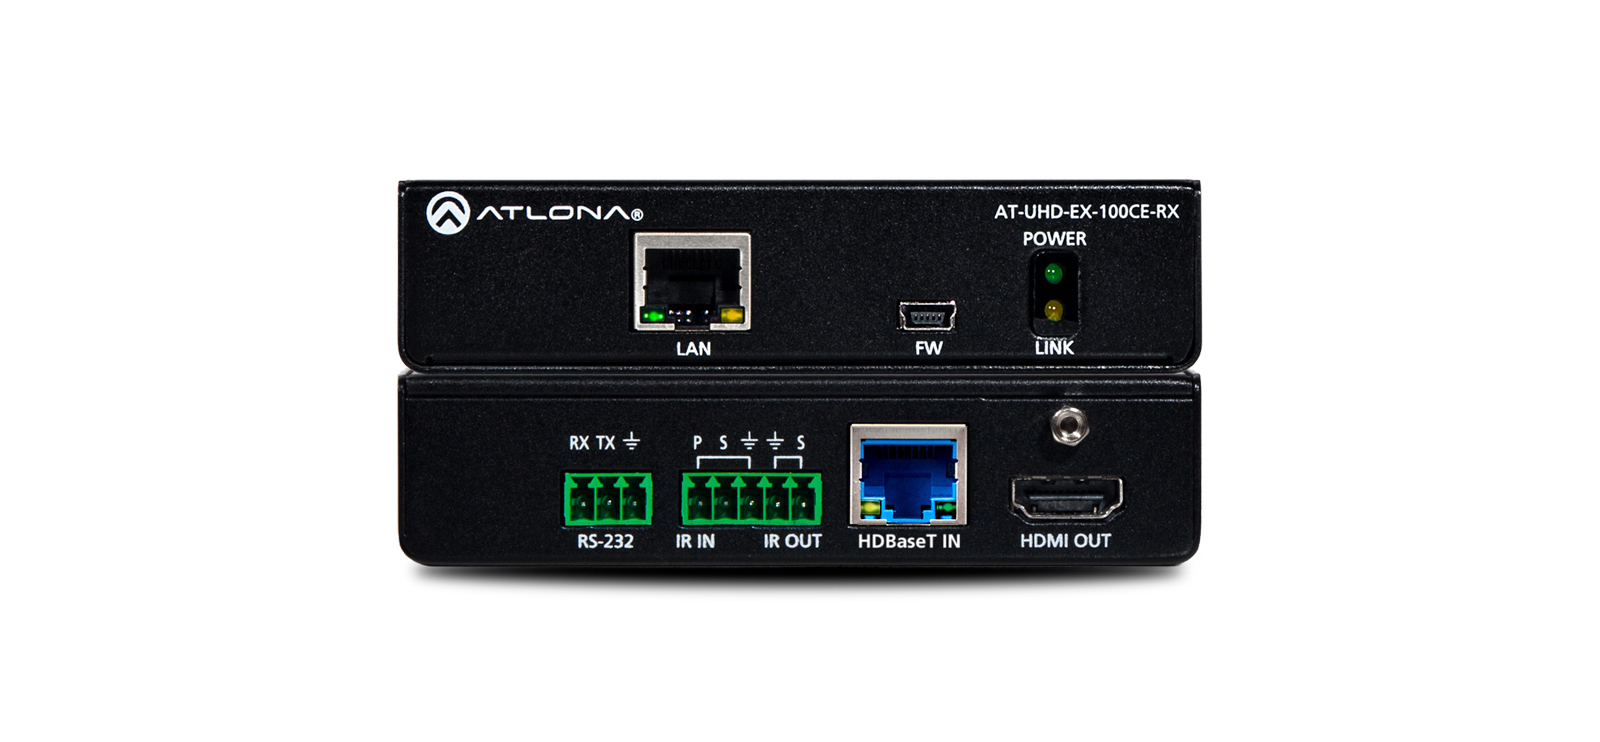 4k/uhd Hdmi Over 100m Hdbaset Receiver With Ethernet Control And Poe